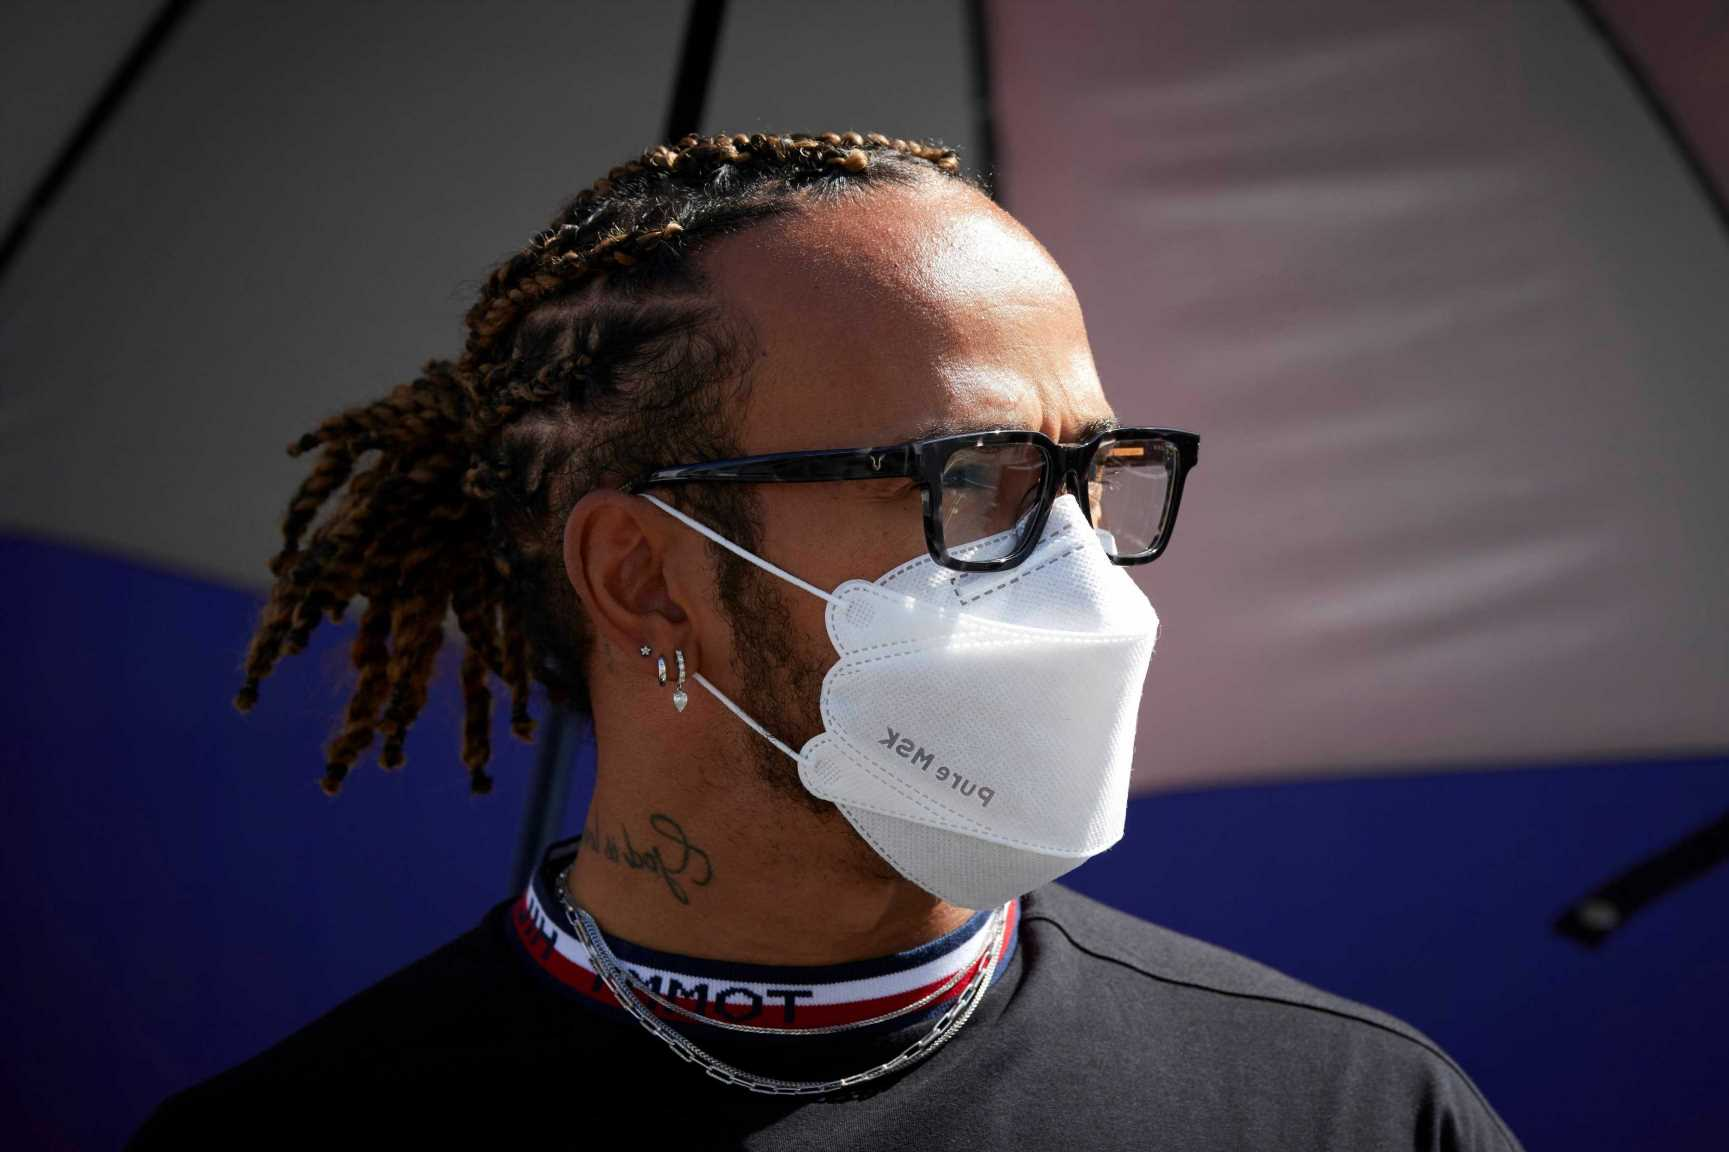 F1 introduce new rule to ban Lewis Hamilton and Co from driving too slowly at Azerbaijan Grand Prix